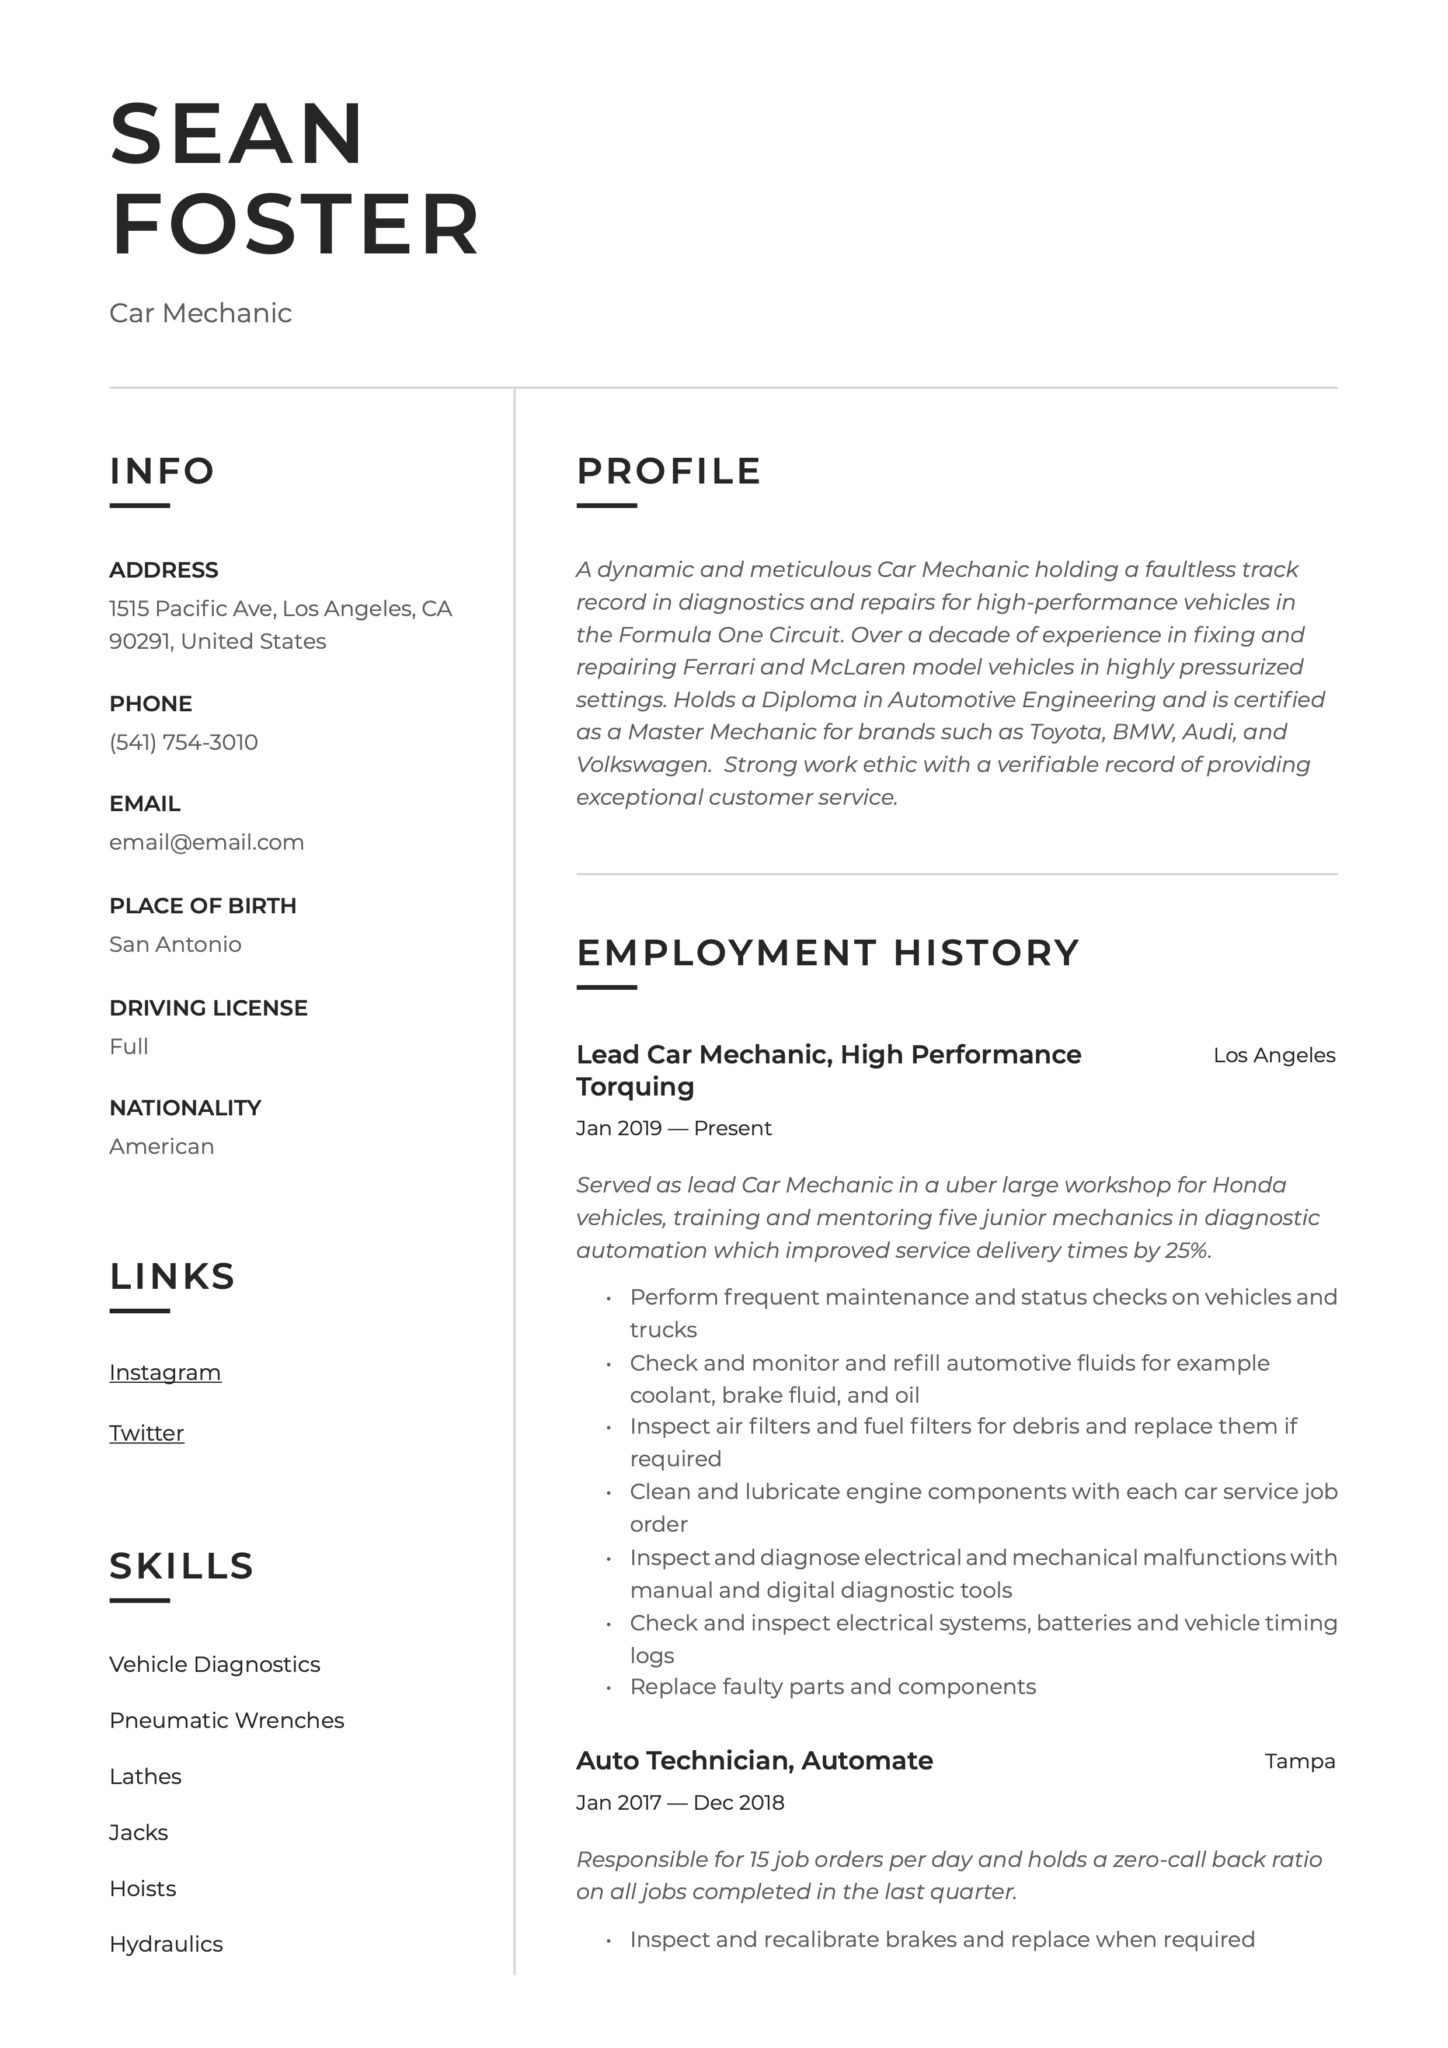 car mechanic resume guide examples auto skills scaled create own template director of Resume Auto Mechanic Resume Skills Examples